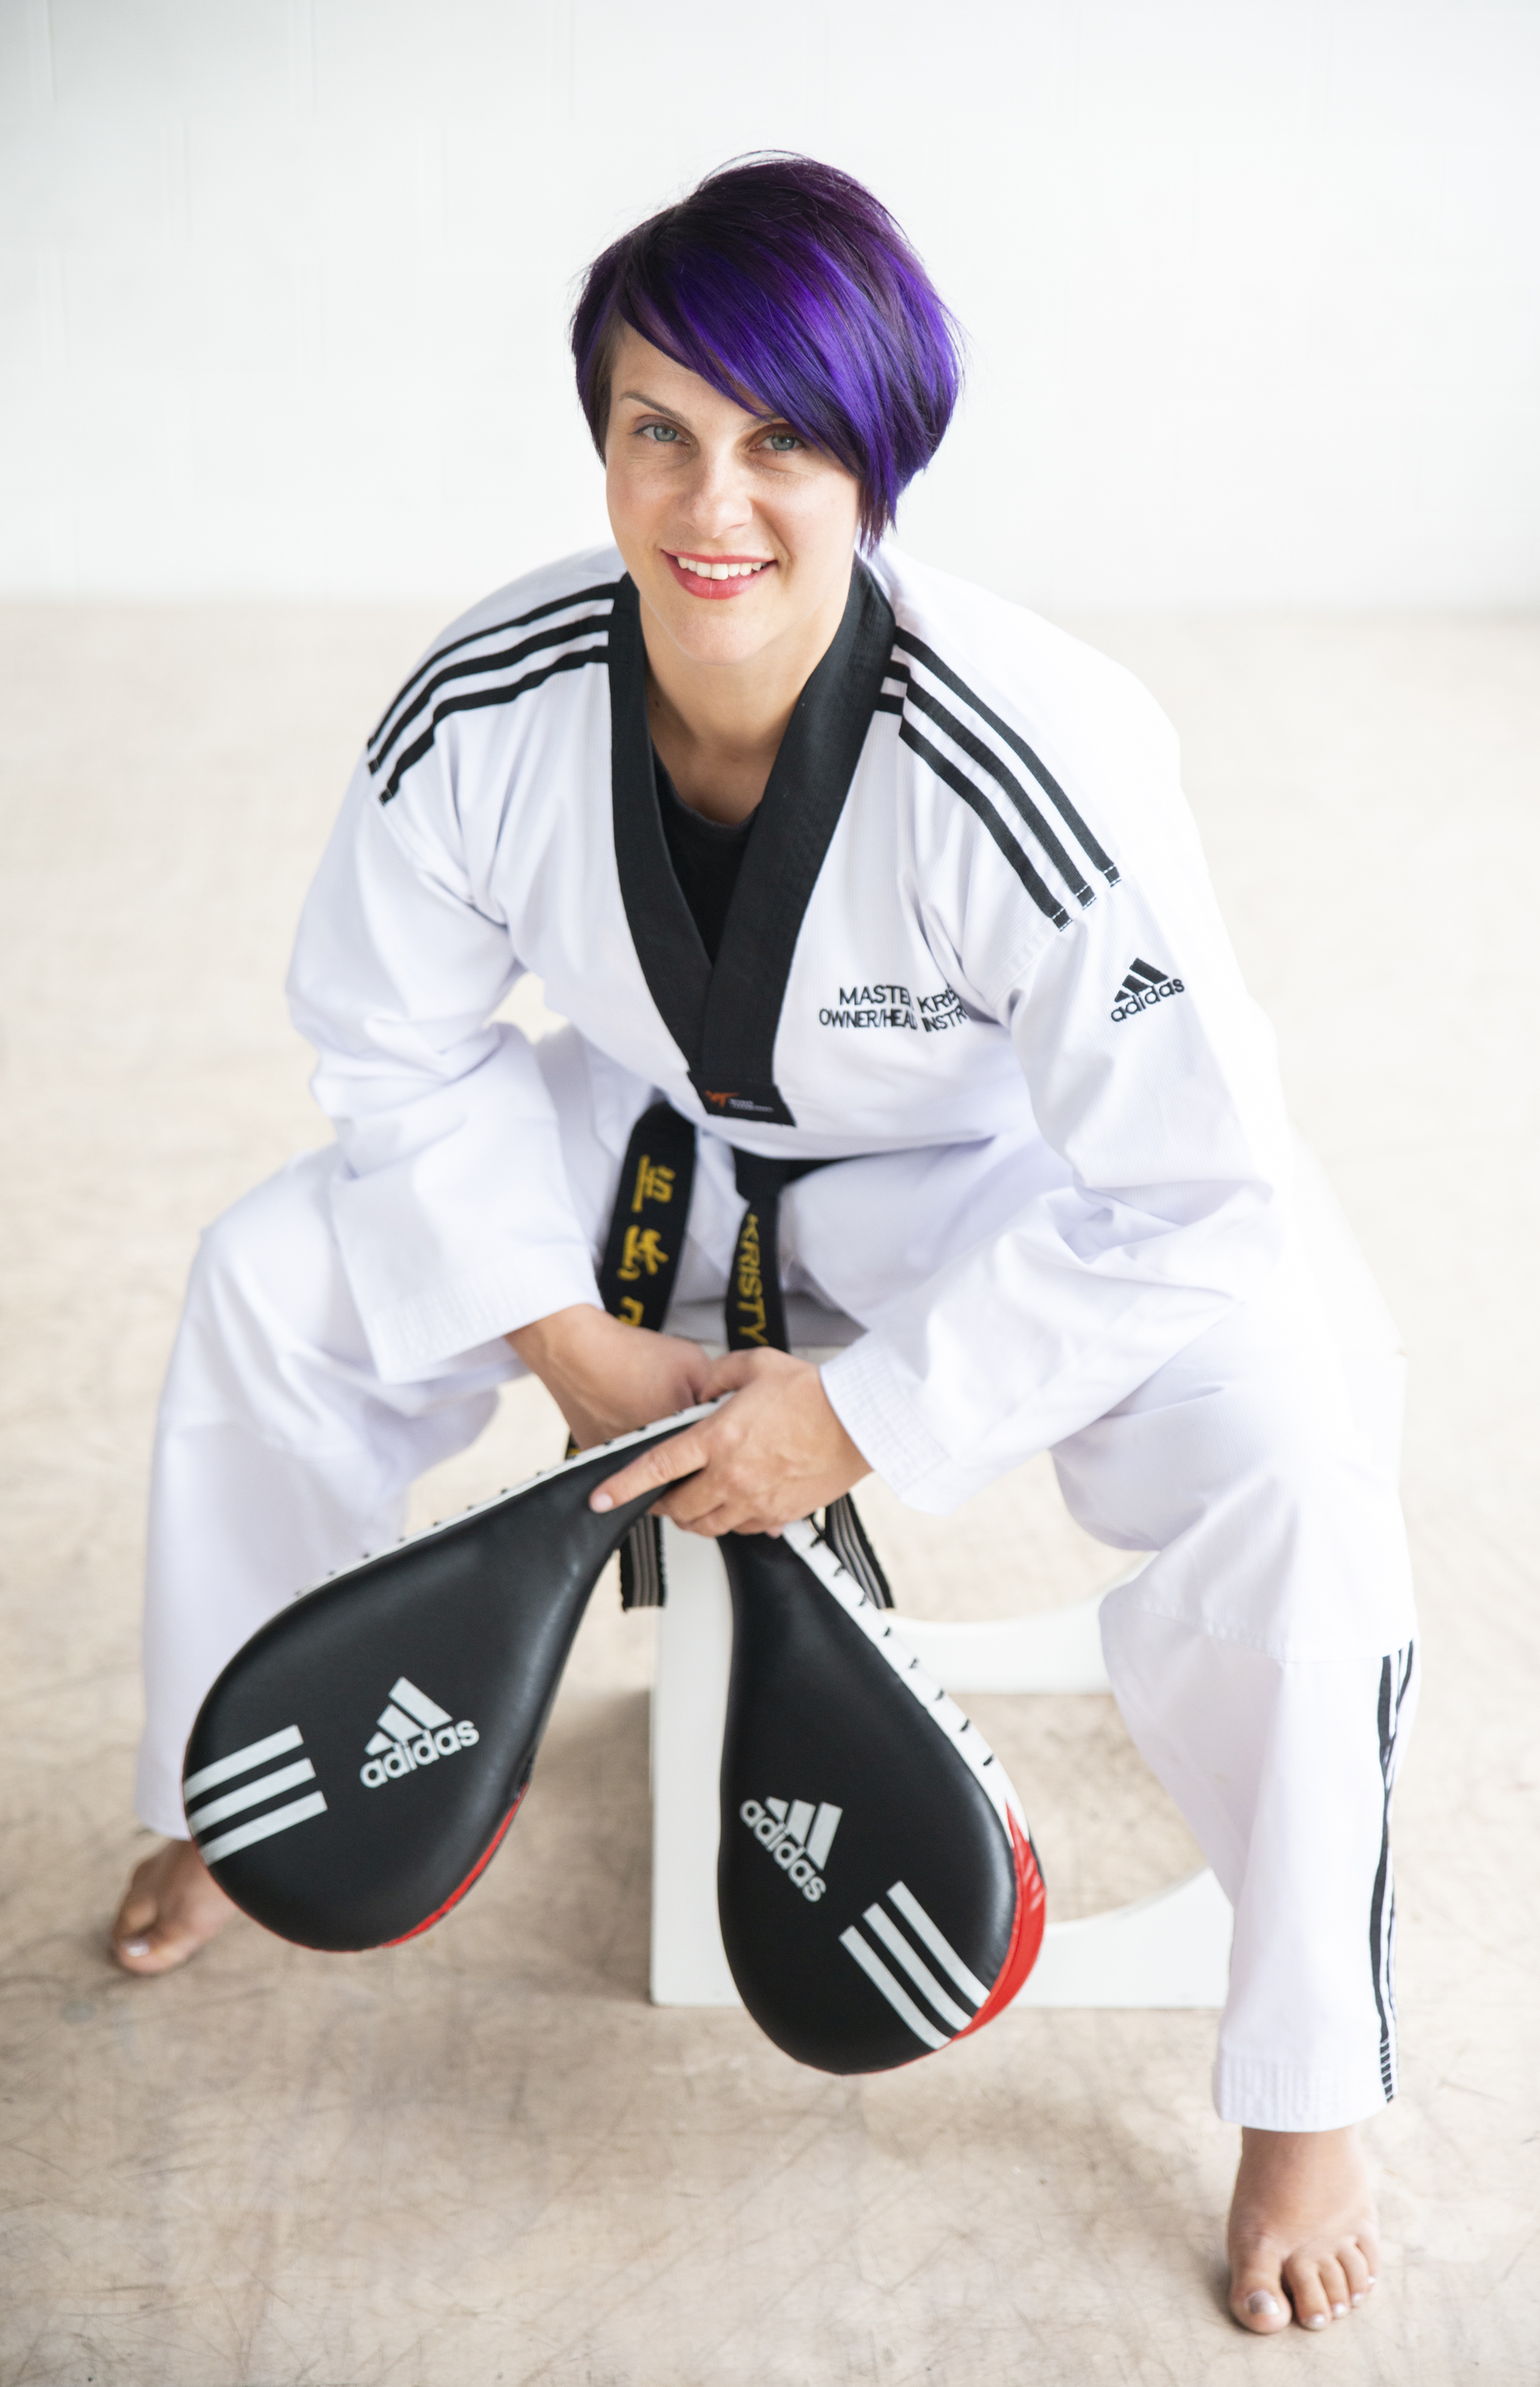 Meet Master Kristy - The first female Taekwondo head instructor in Melbourne's West